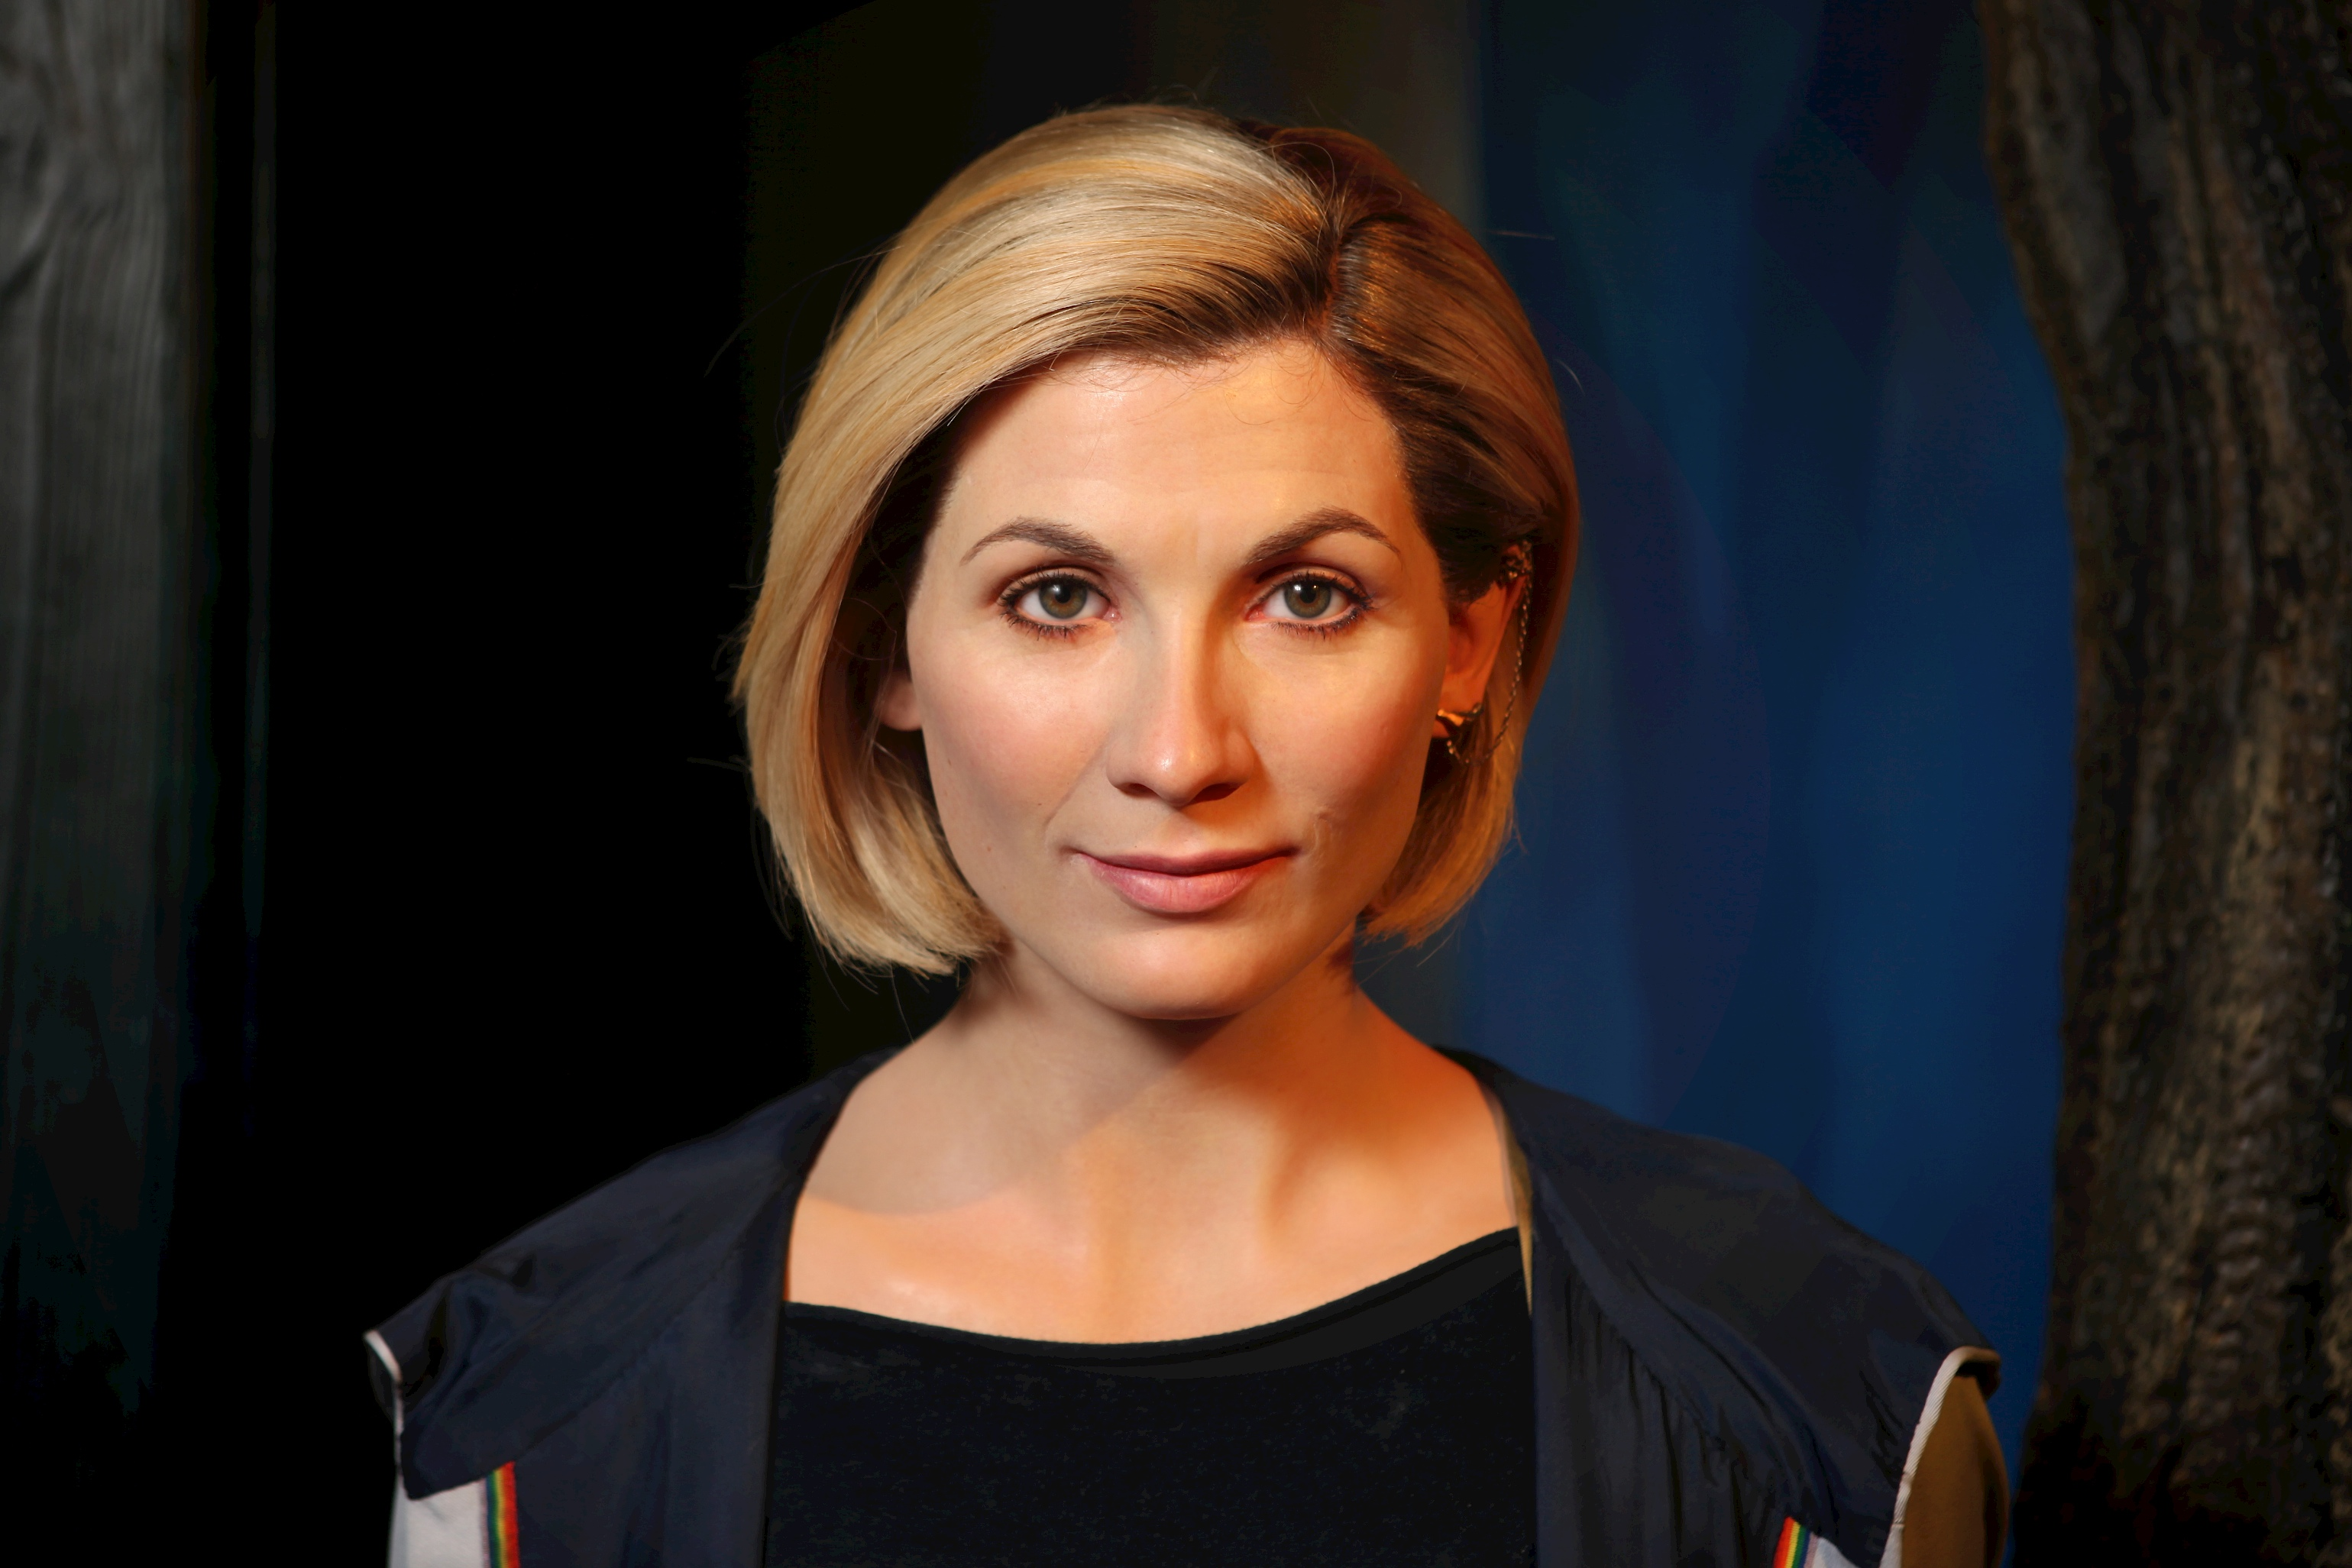 Doctor Who wax figure head shot at Madame Tussauds Blackpool